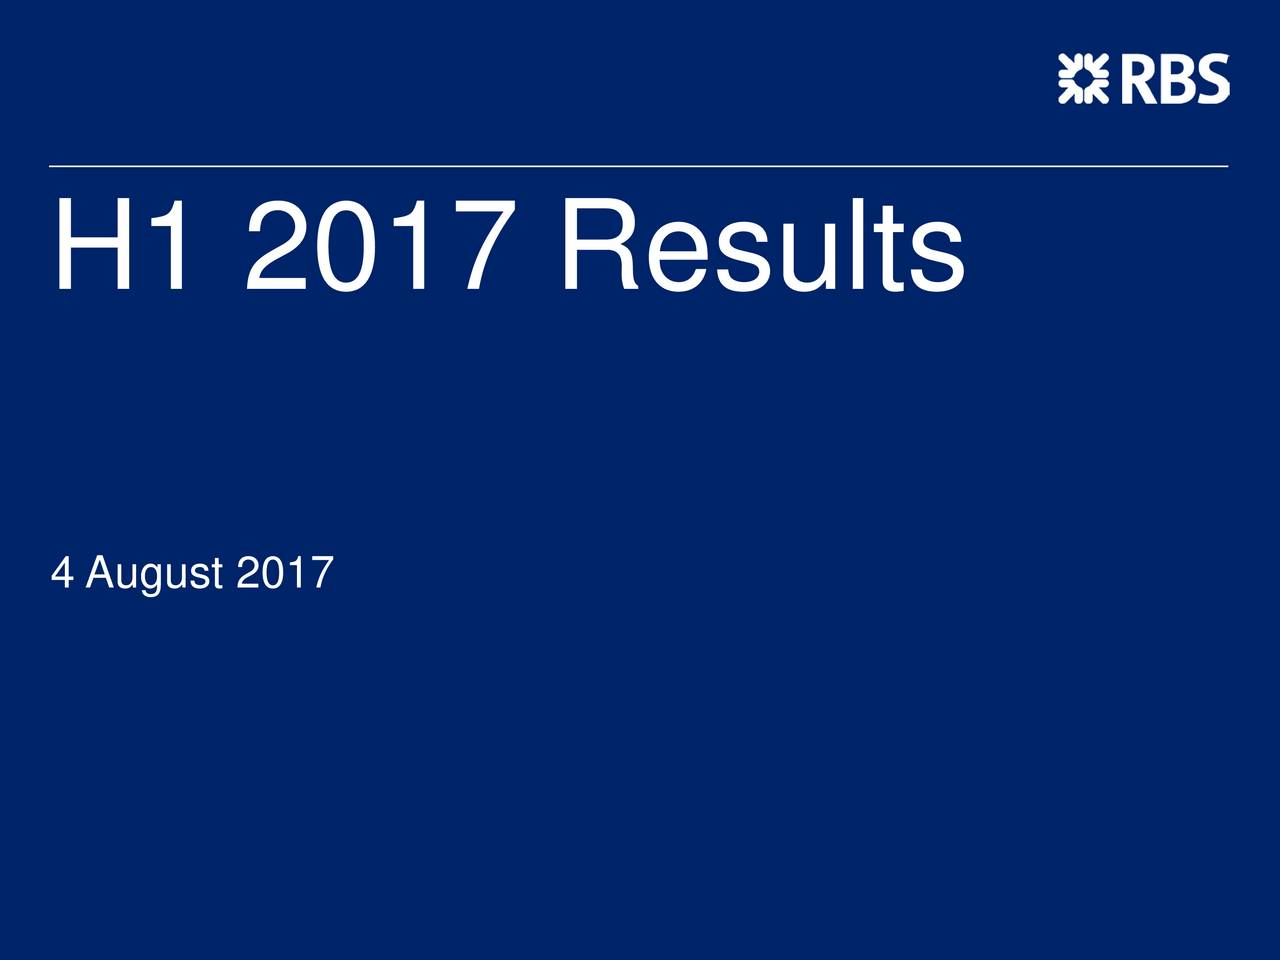 The Royal Bank of Scotland Group plc 2017 Q2 - Results - Earnings ...